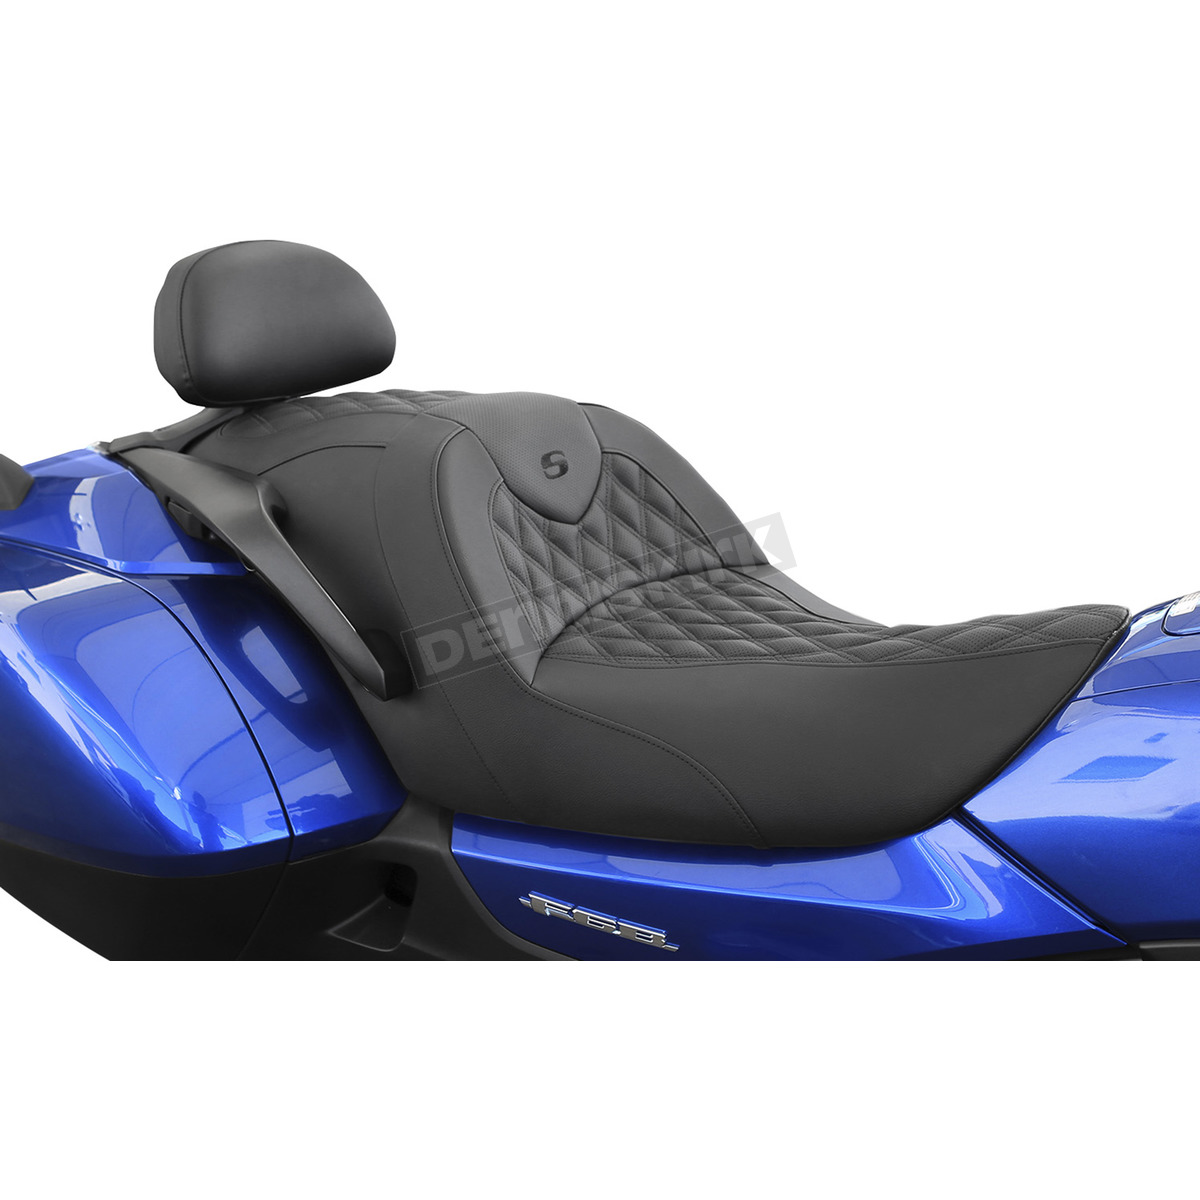 road sofa seat goldwing how to make cushions fluffy again saddlemen ls w backrest h23 20 182br